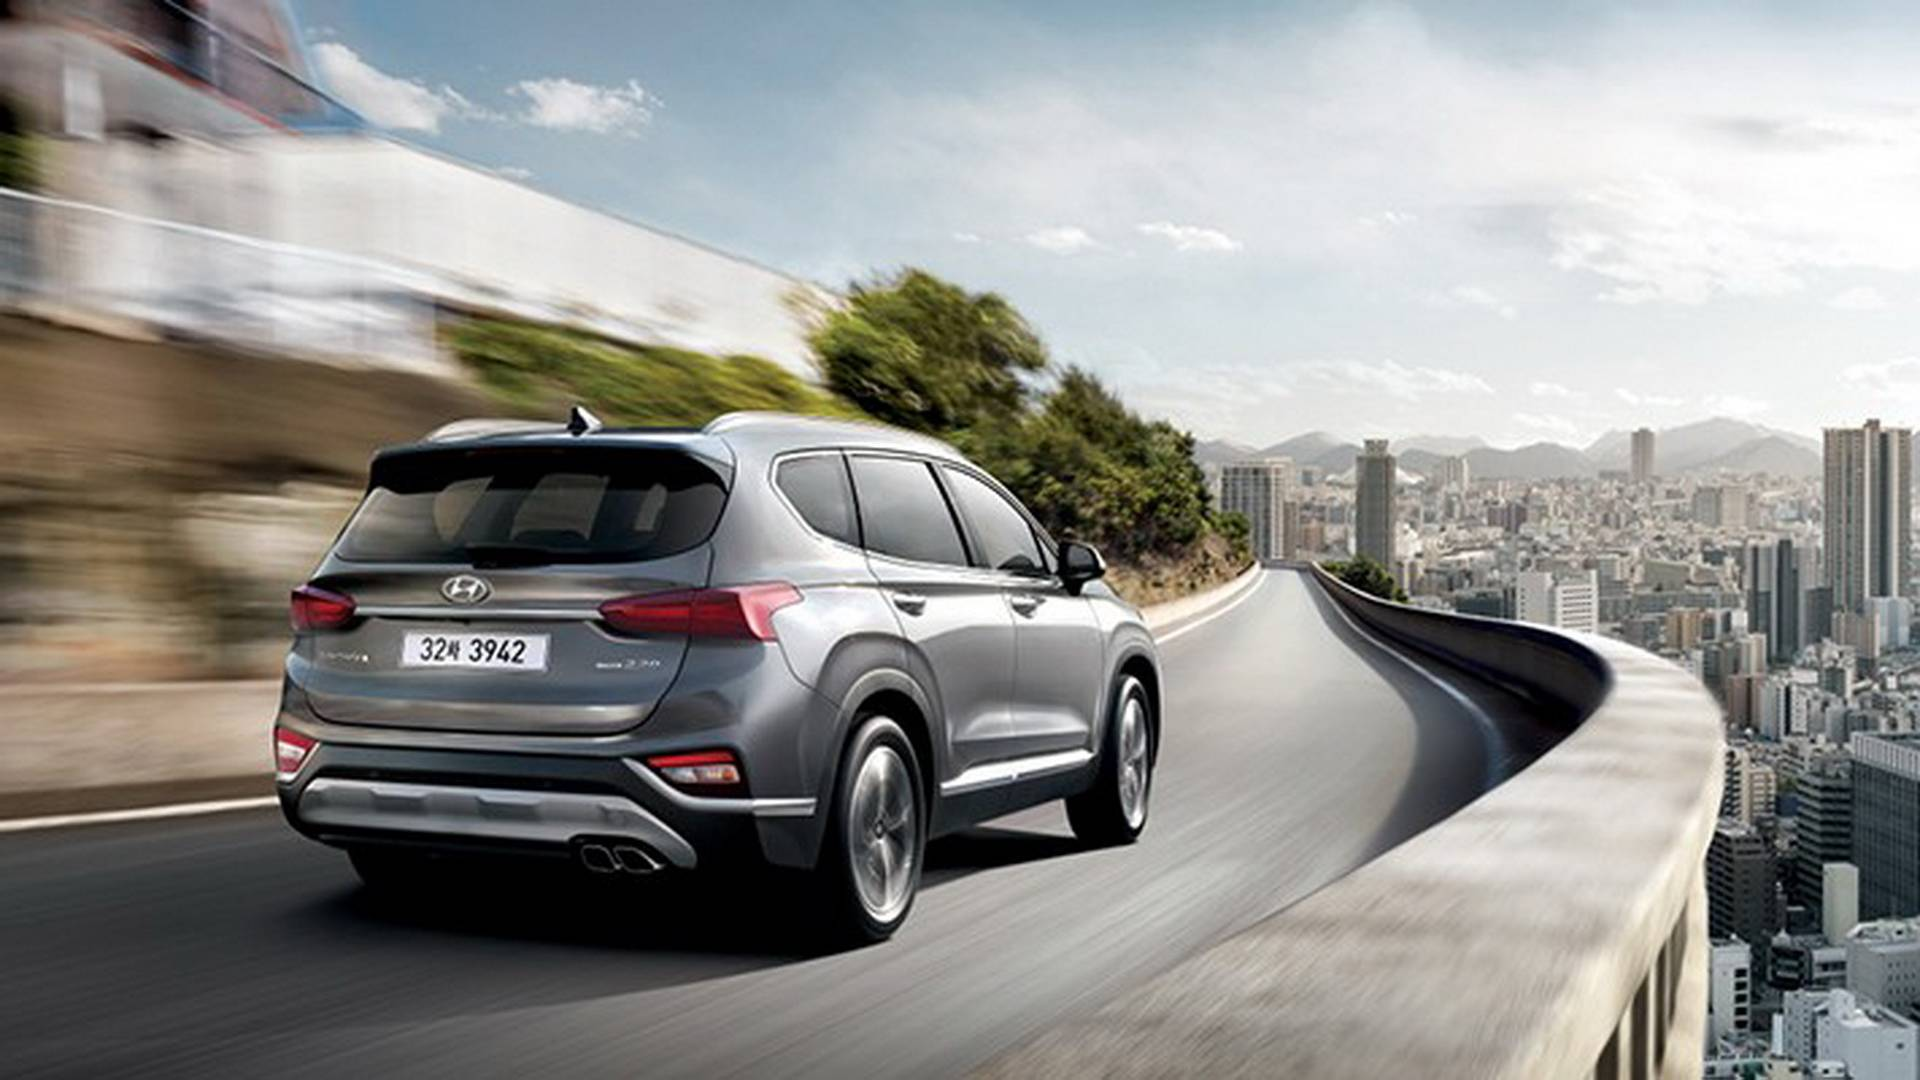 2019 Hyundai Santa Fe Looks Magnificent In New Official ...